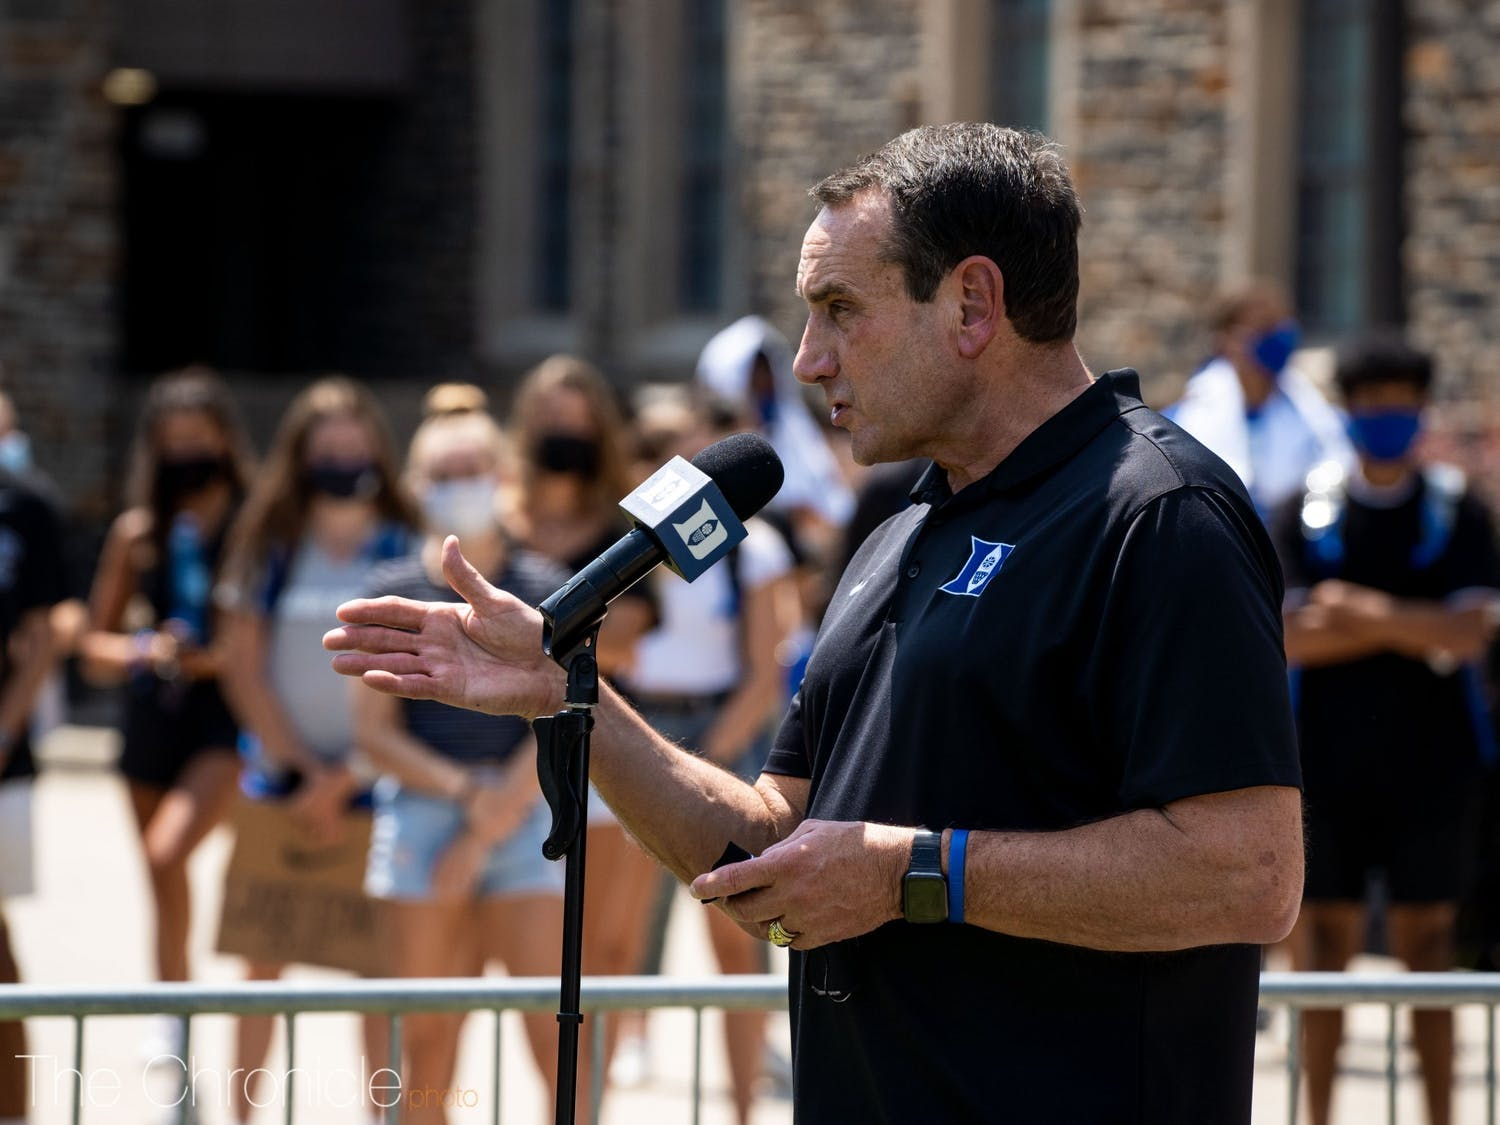 Coach K has been very active in social justice movements and his influence has spread across the Duke community.